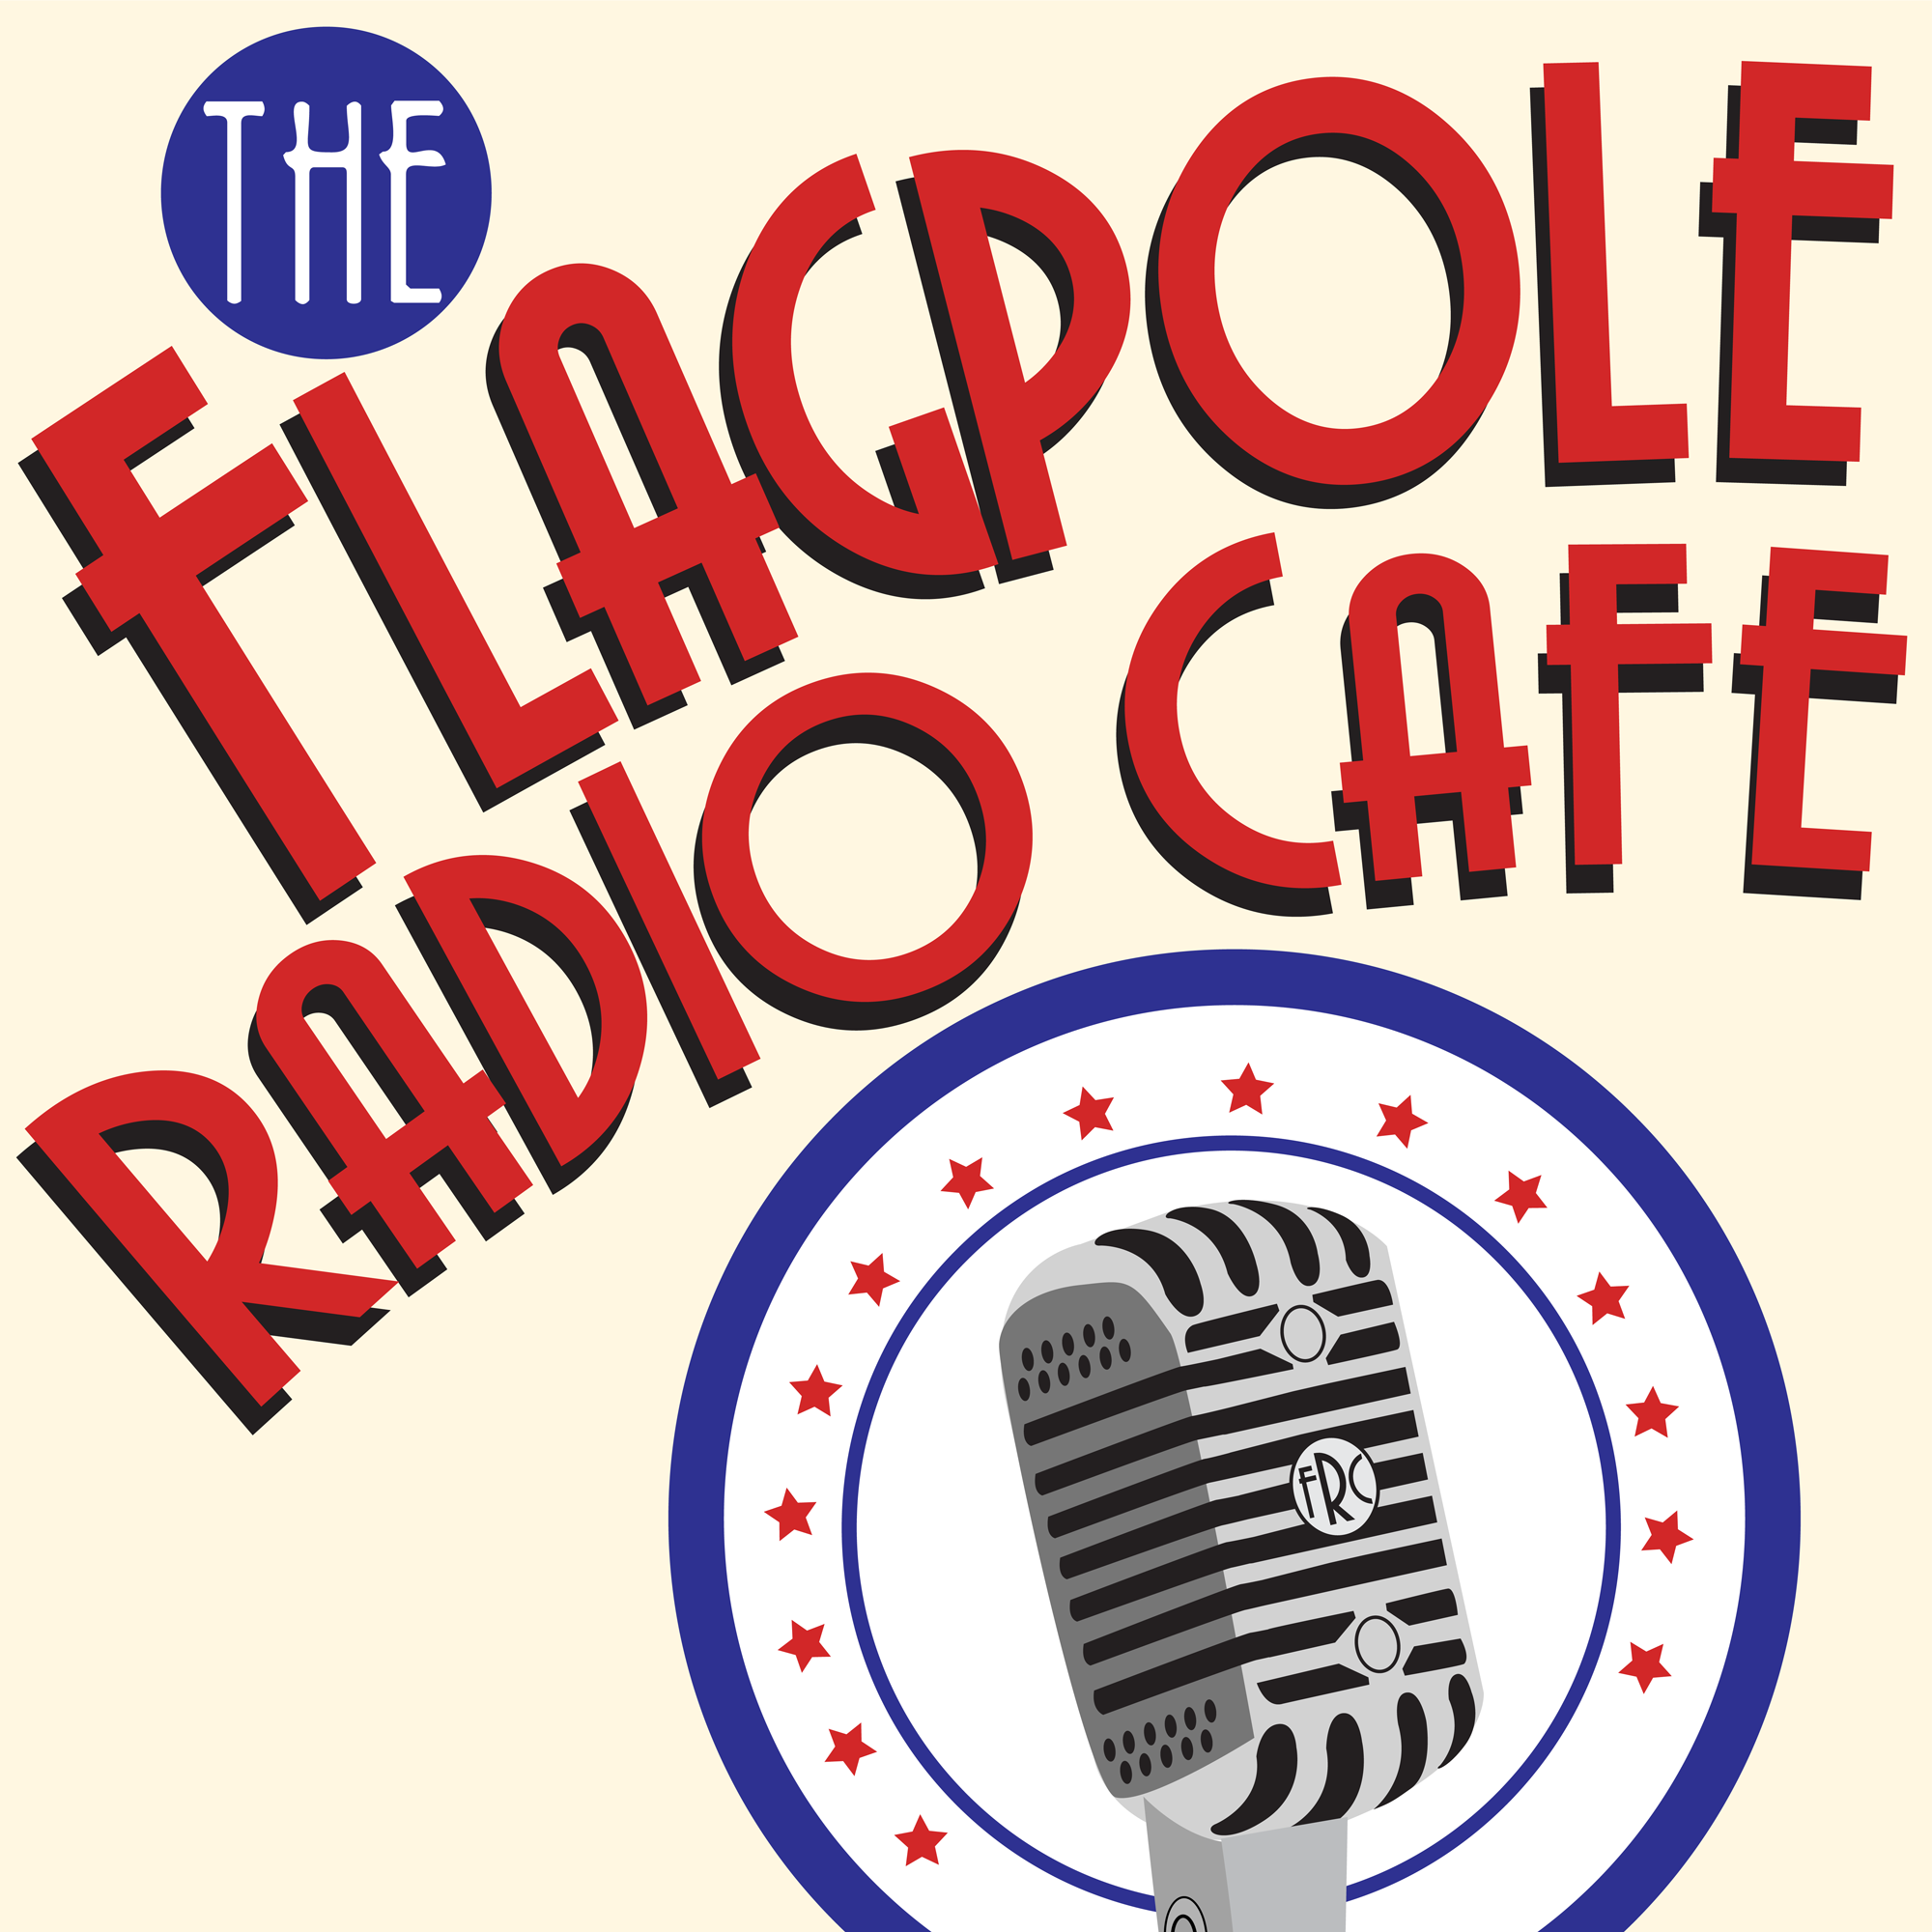 Flagpole Radio Cafe (the podcast) show art